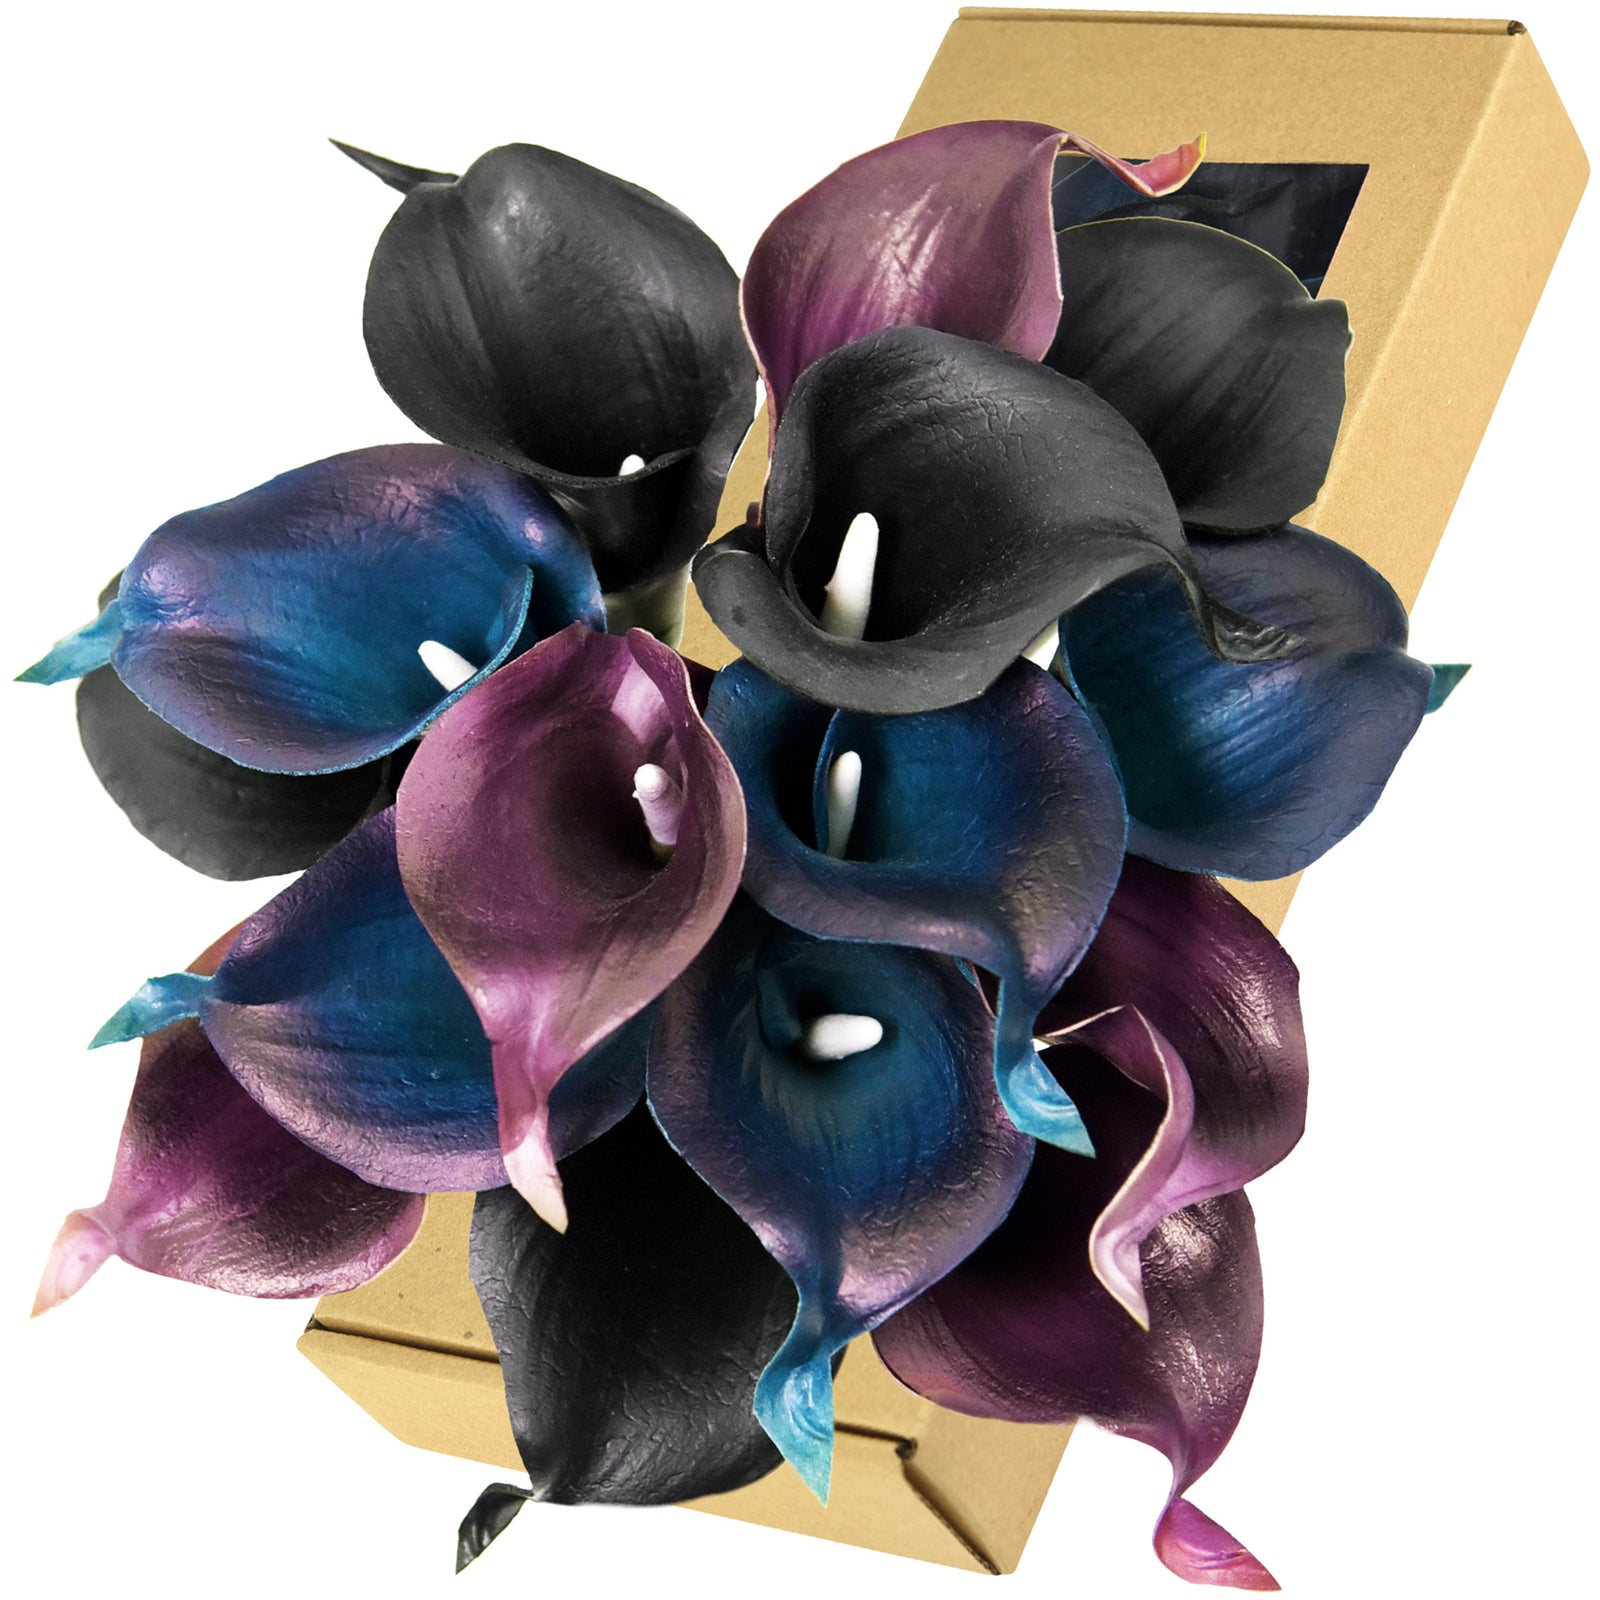 FiveSeasonStuff 15 Stems Real Touch (Stargazer Purple Blue & Black) Calla Lilies Artificial Flower Bouquet, Wedding, Bridal, Home Décor DIY